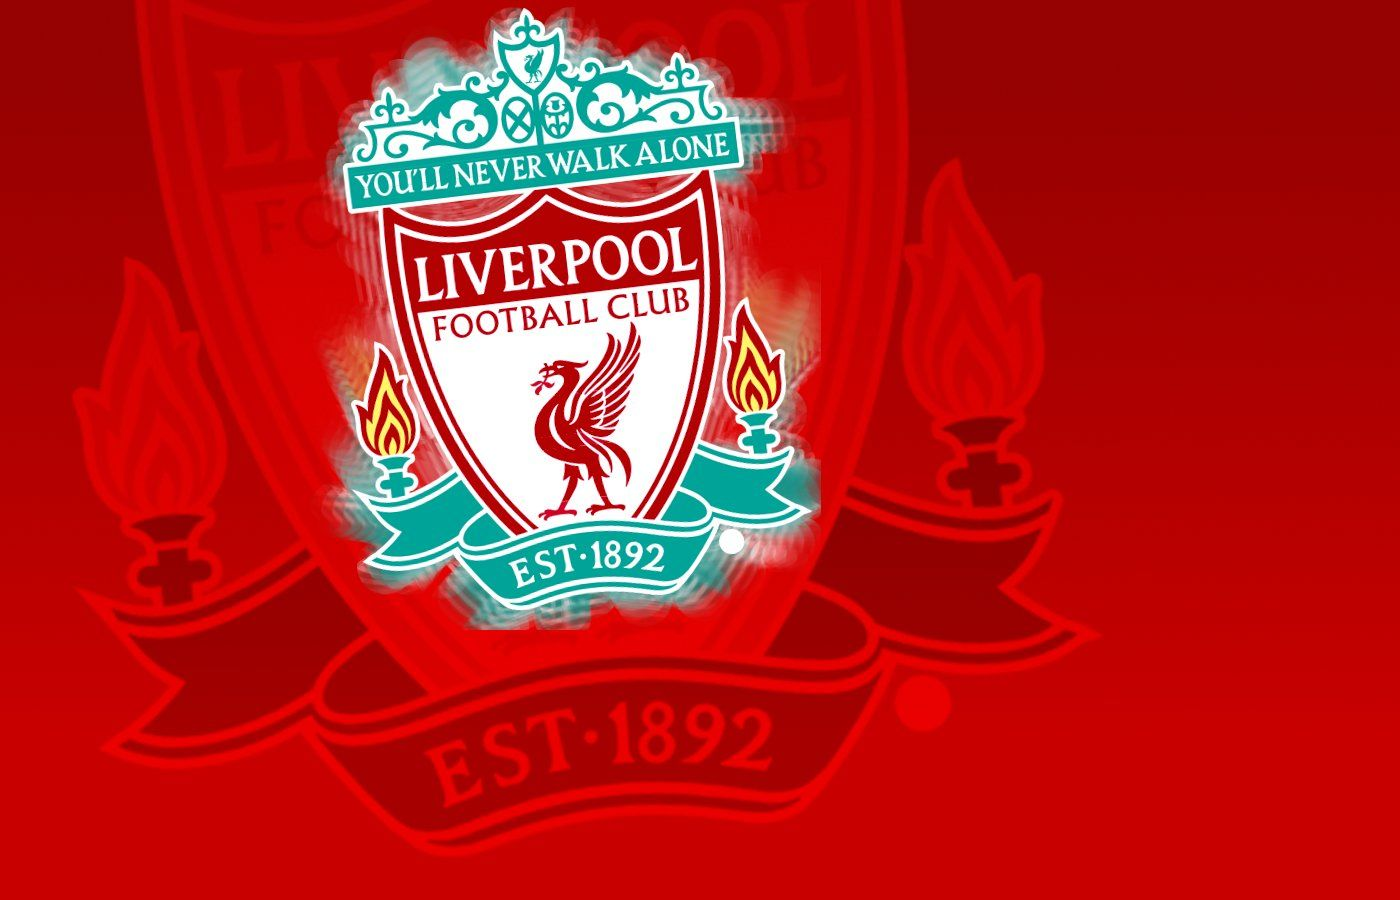 pin wallpaper liverpool awesome - photo #8